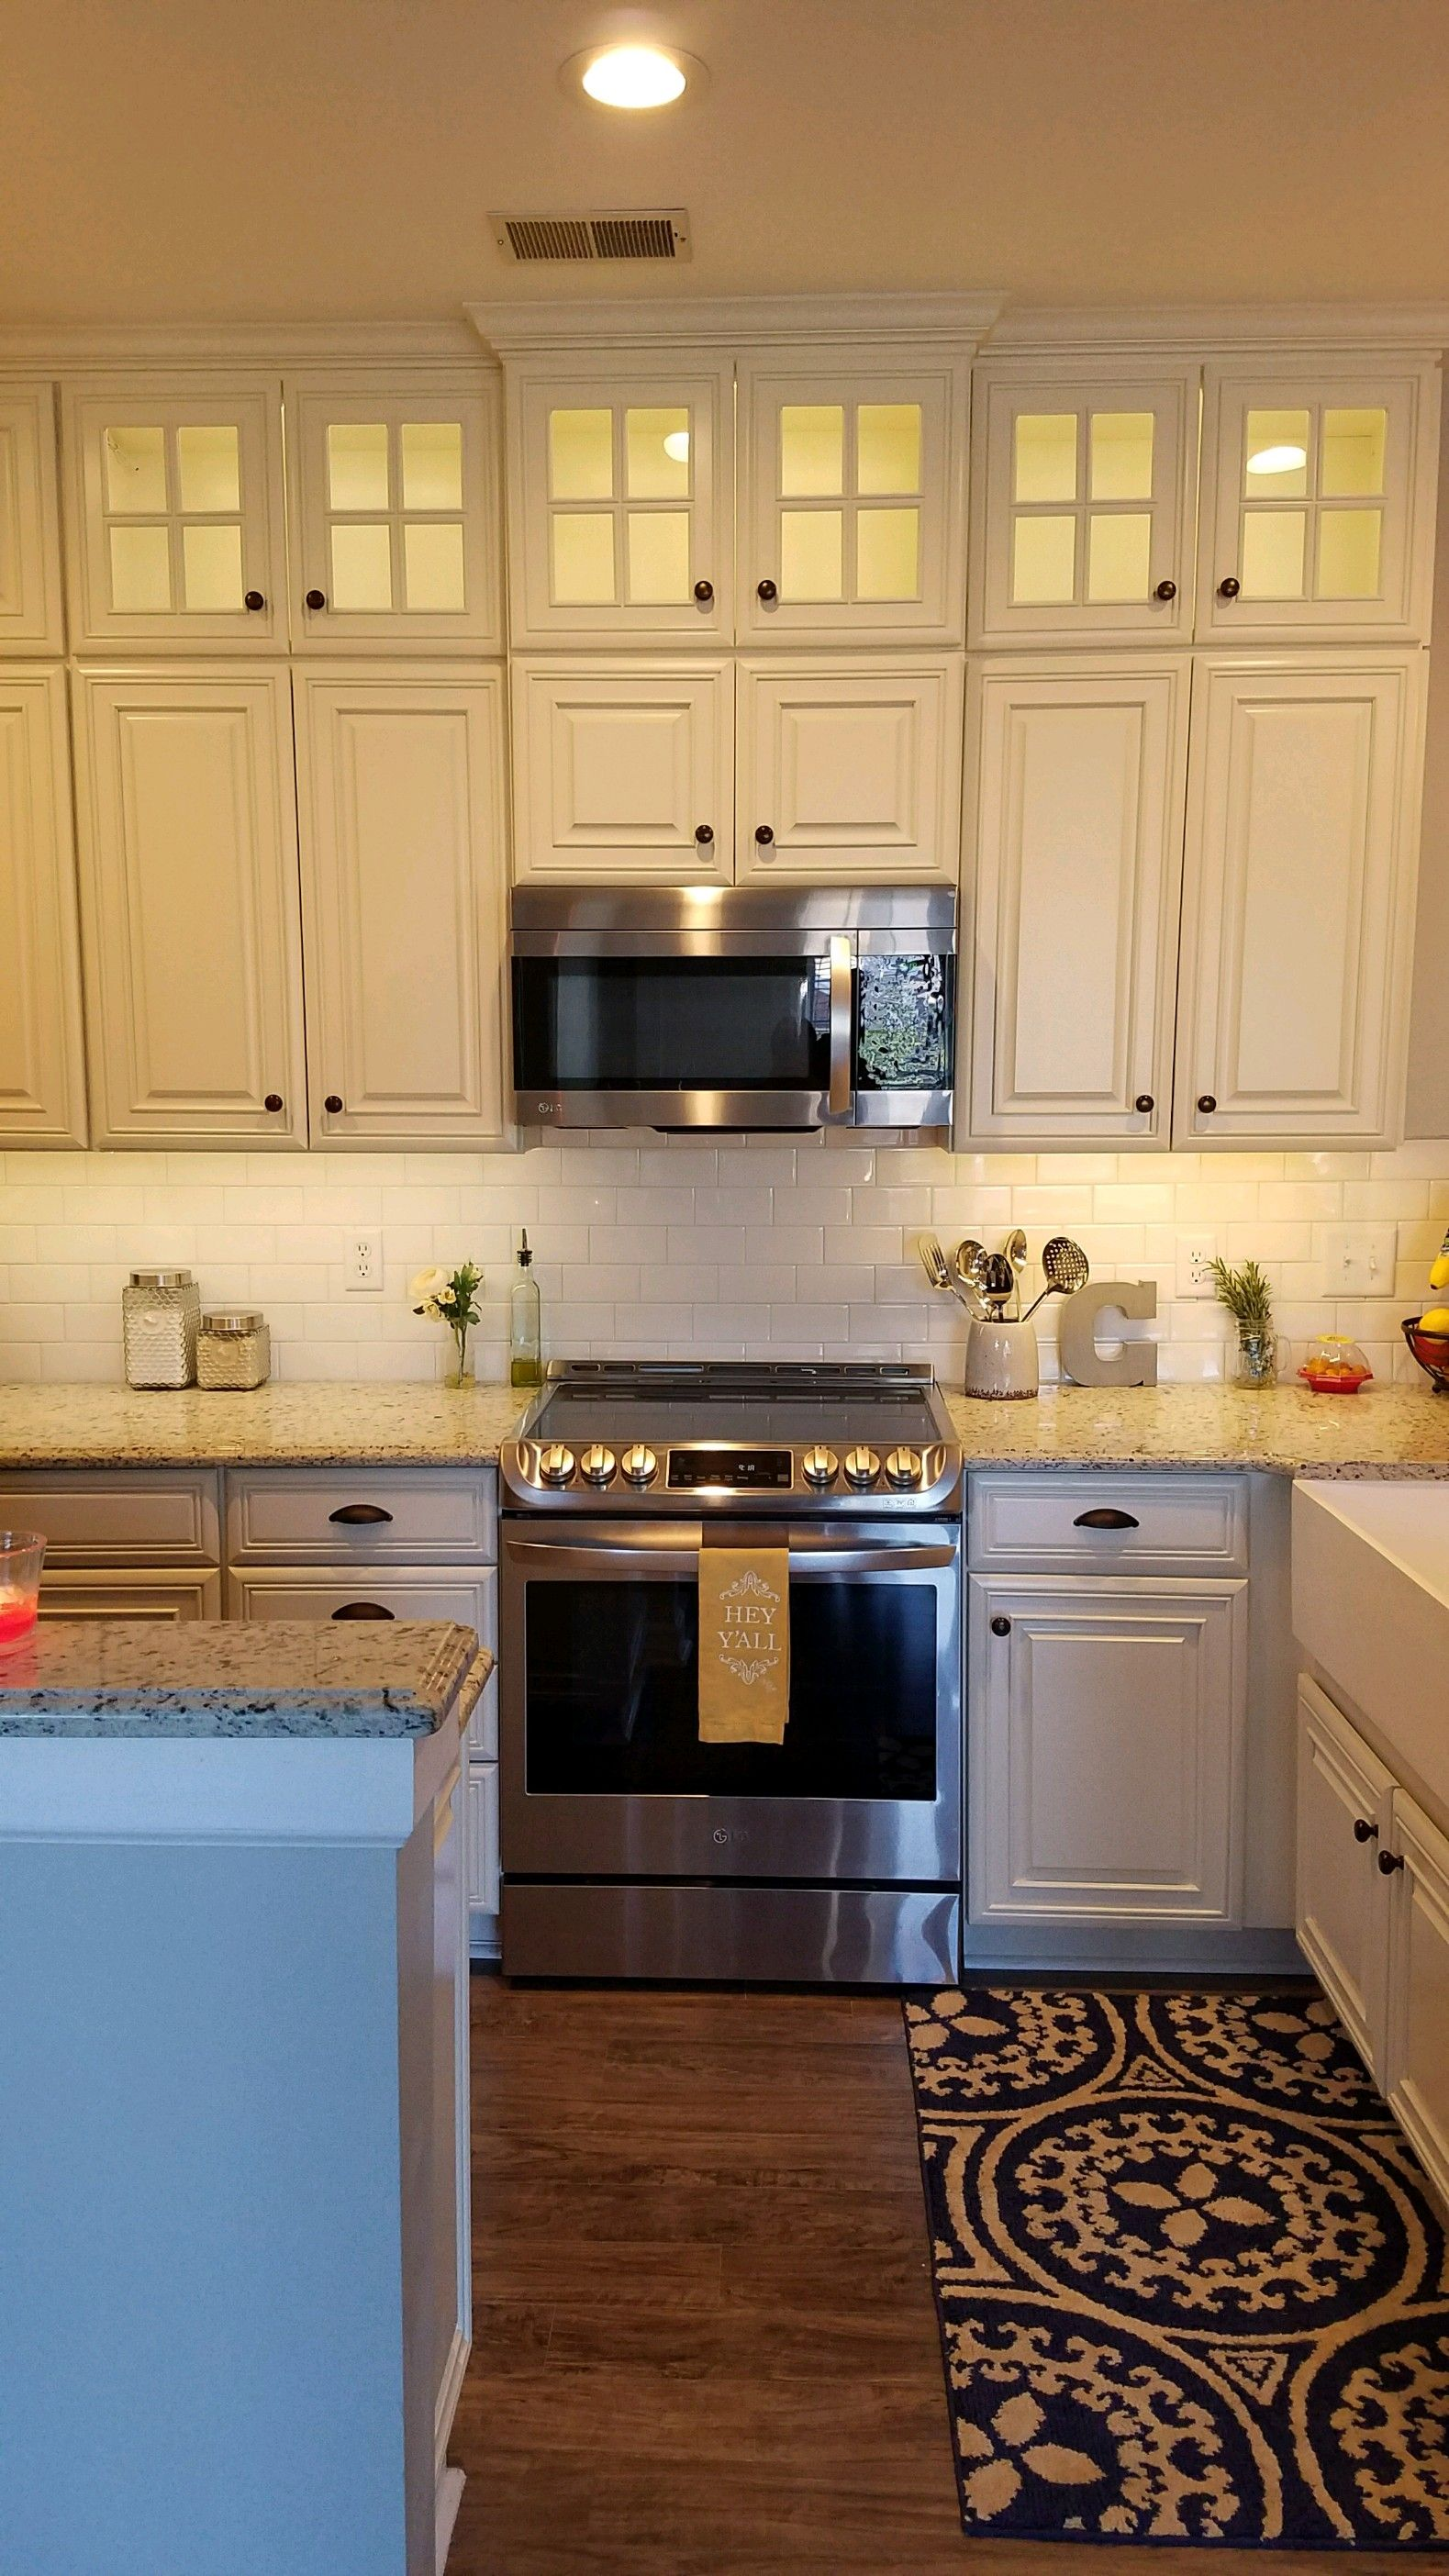 Bright And Fresh These Are The Words That Come To Mind When You Look At This Beautif Kitchen Remodeling Services Kitchen Installation Kitchen Cabinet Remodel